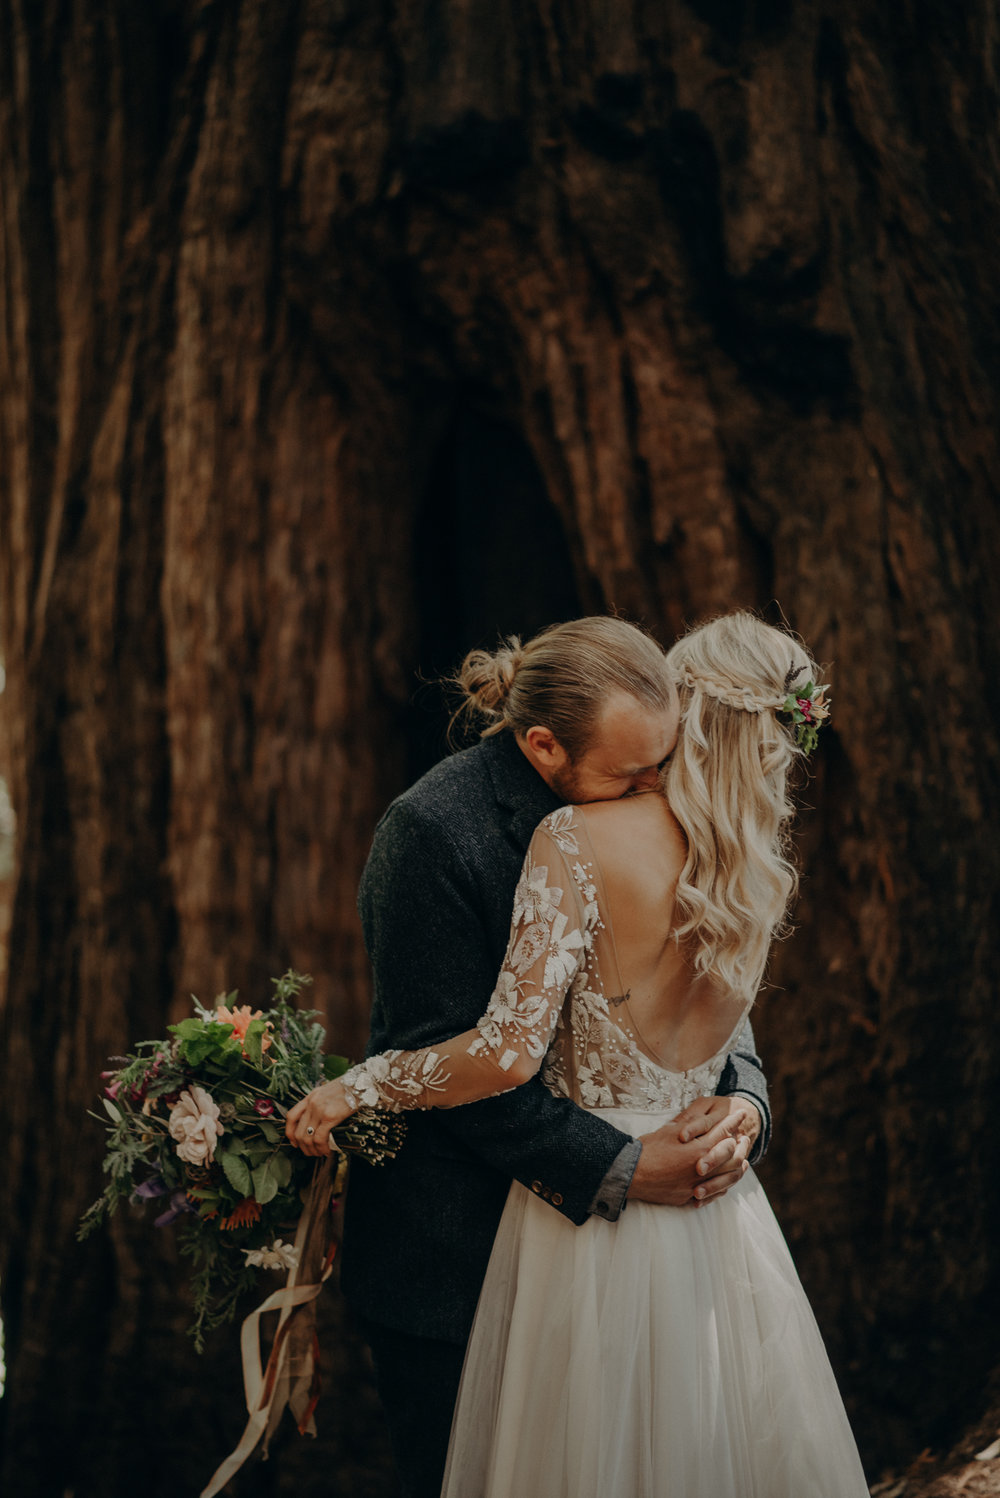 IsaiahAndTaylor.com - California Destination Elopement, Lake Leonard Reserve Wedding, Ukiah-060.jpg